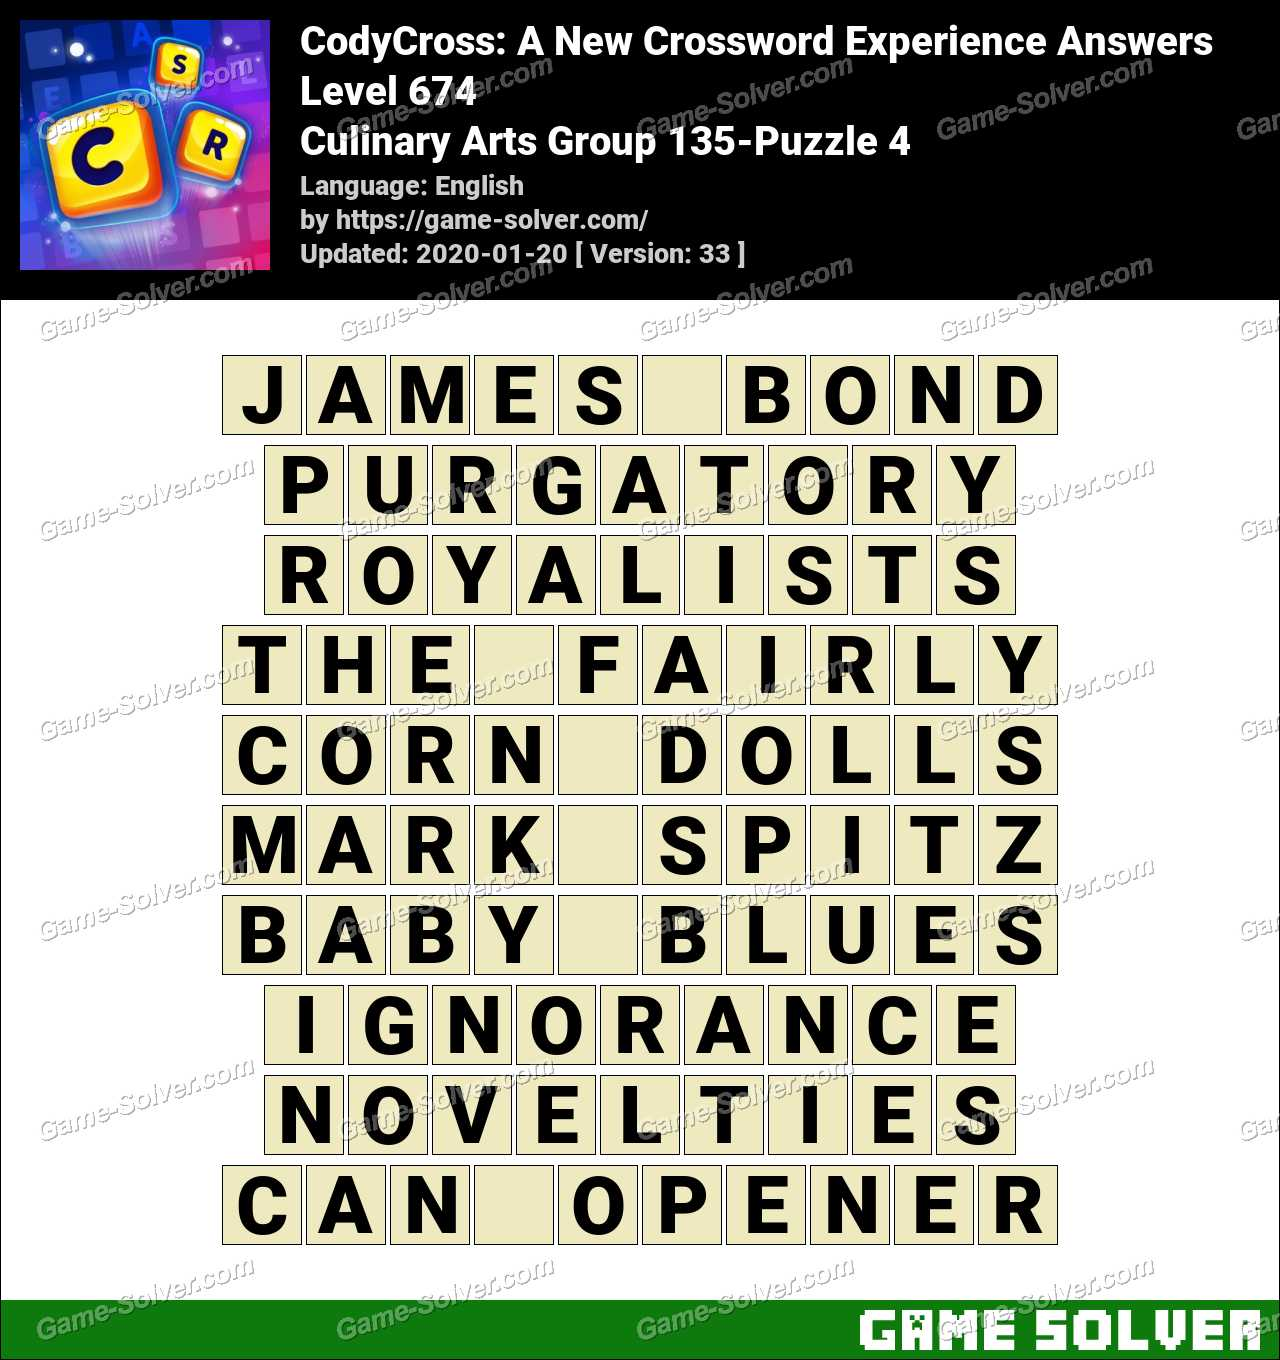 CodyCross Culinary Arts Group 135-Puzzle 4 Answers